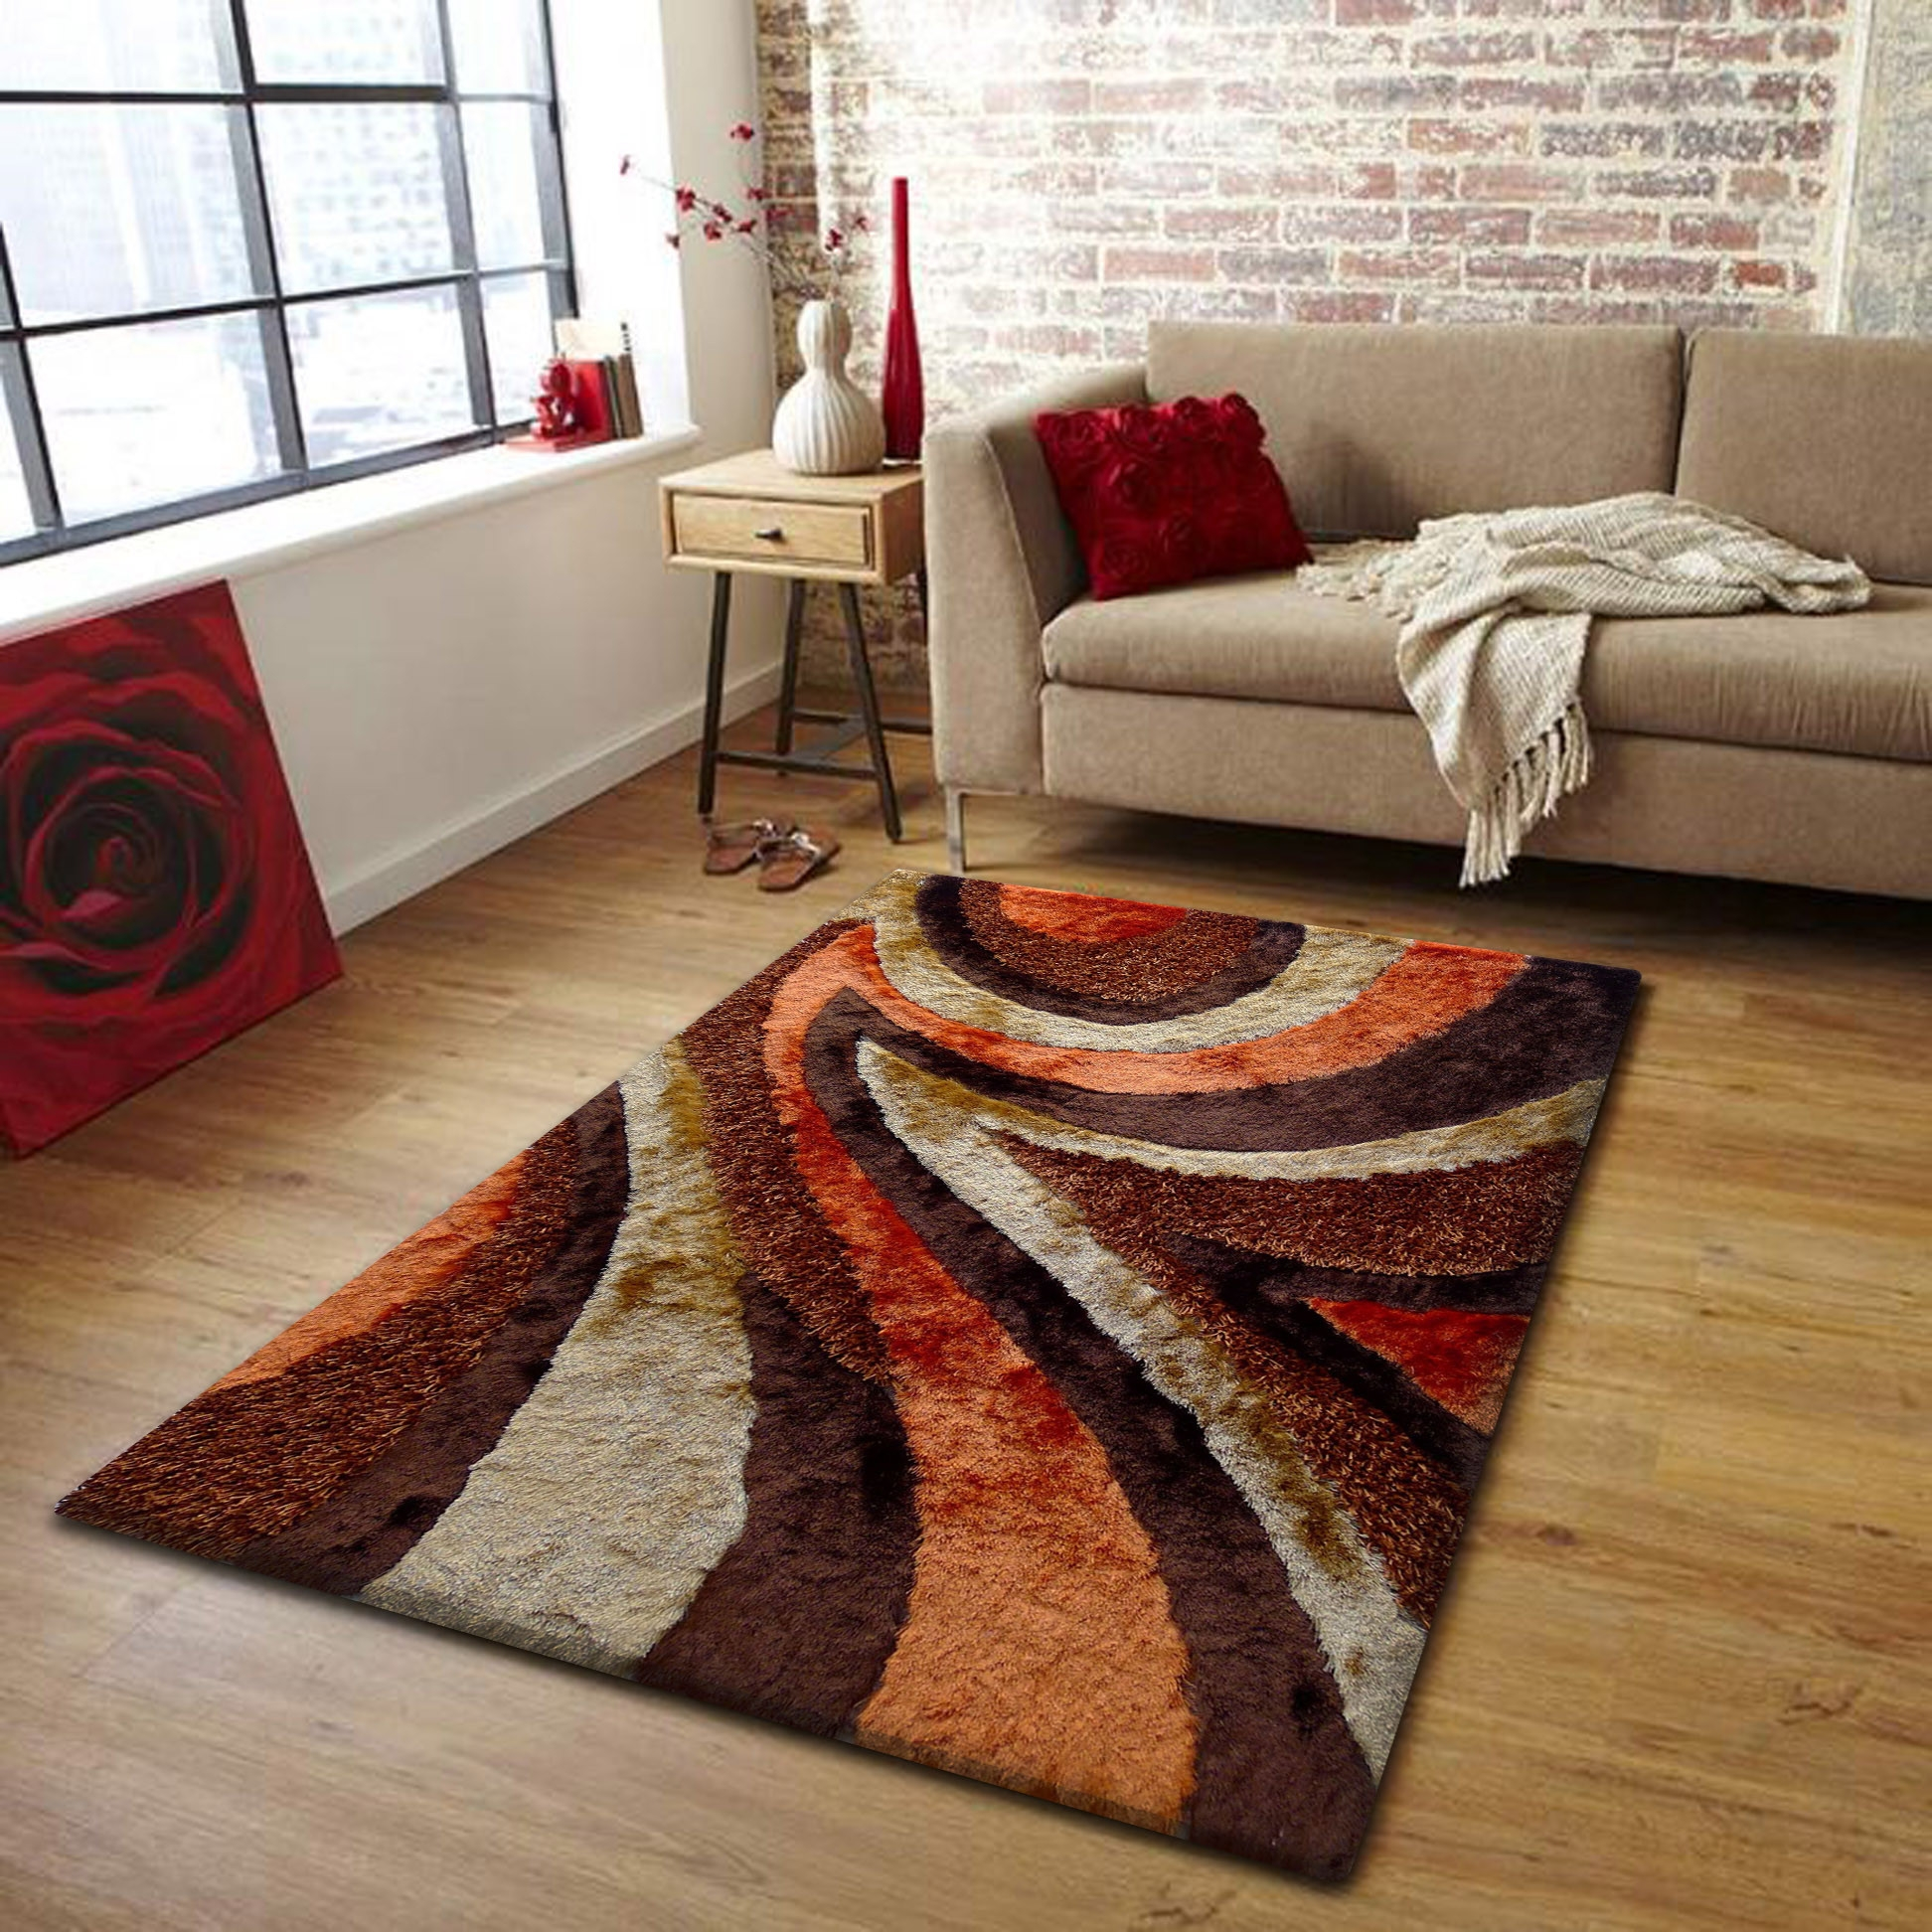 Orange And Brown Rugs Cievi Home Pertaining To Brown Orange Rugs (View 5 of 15)